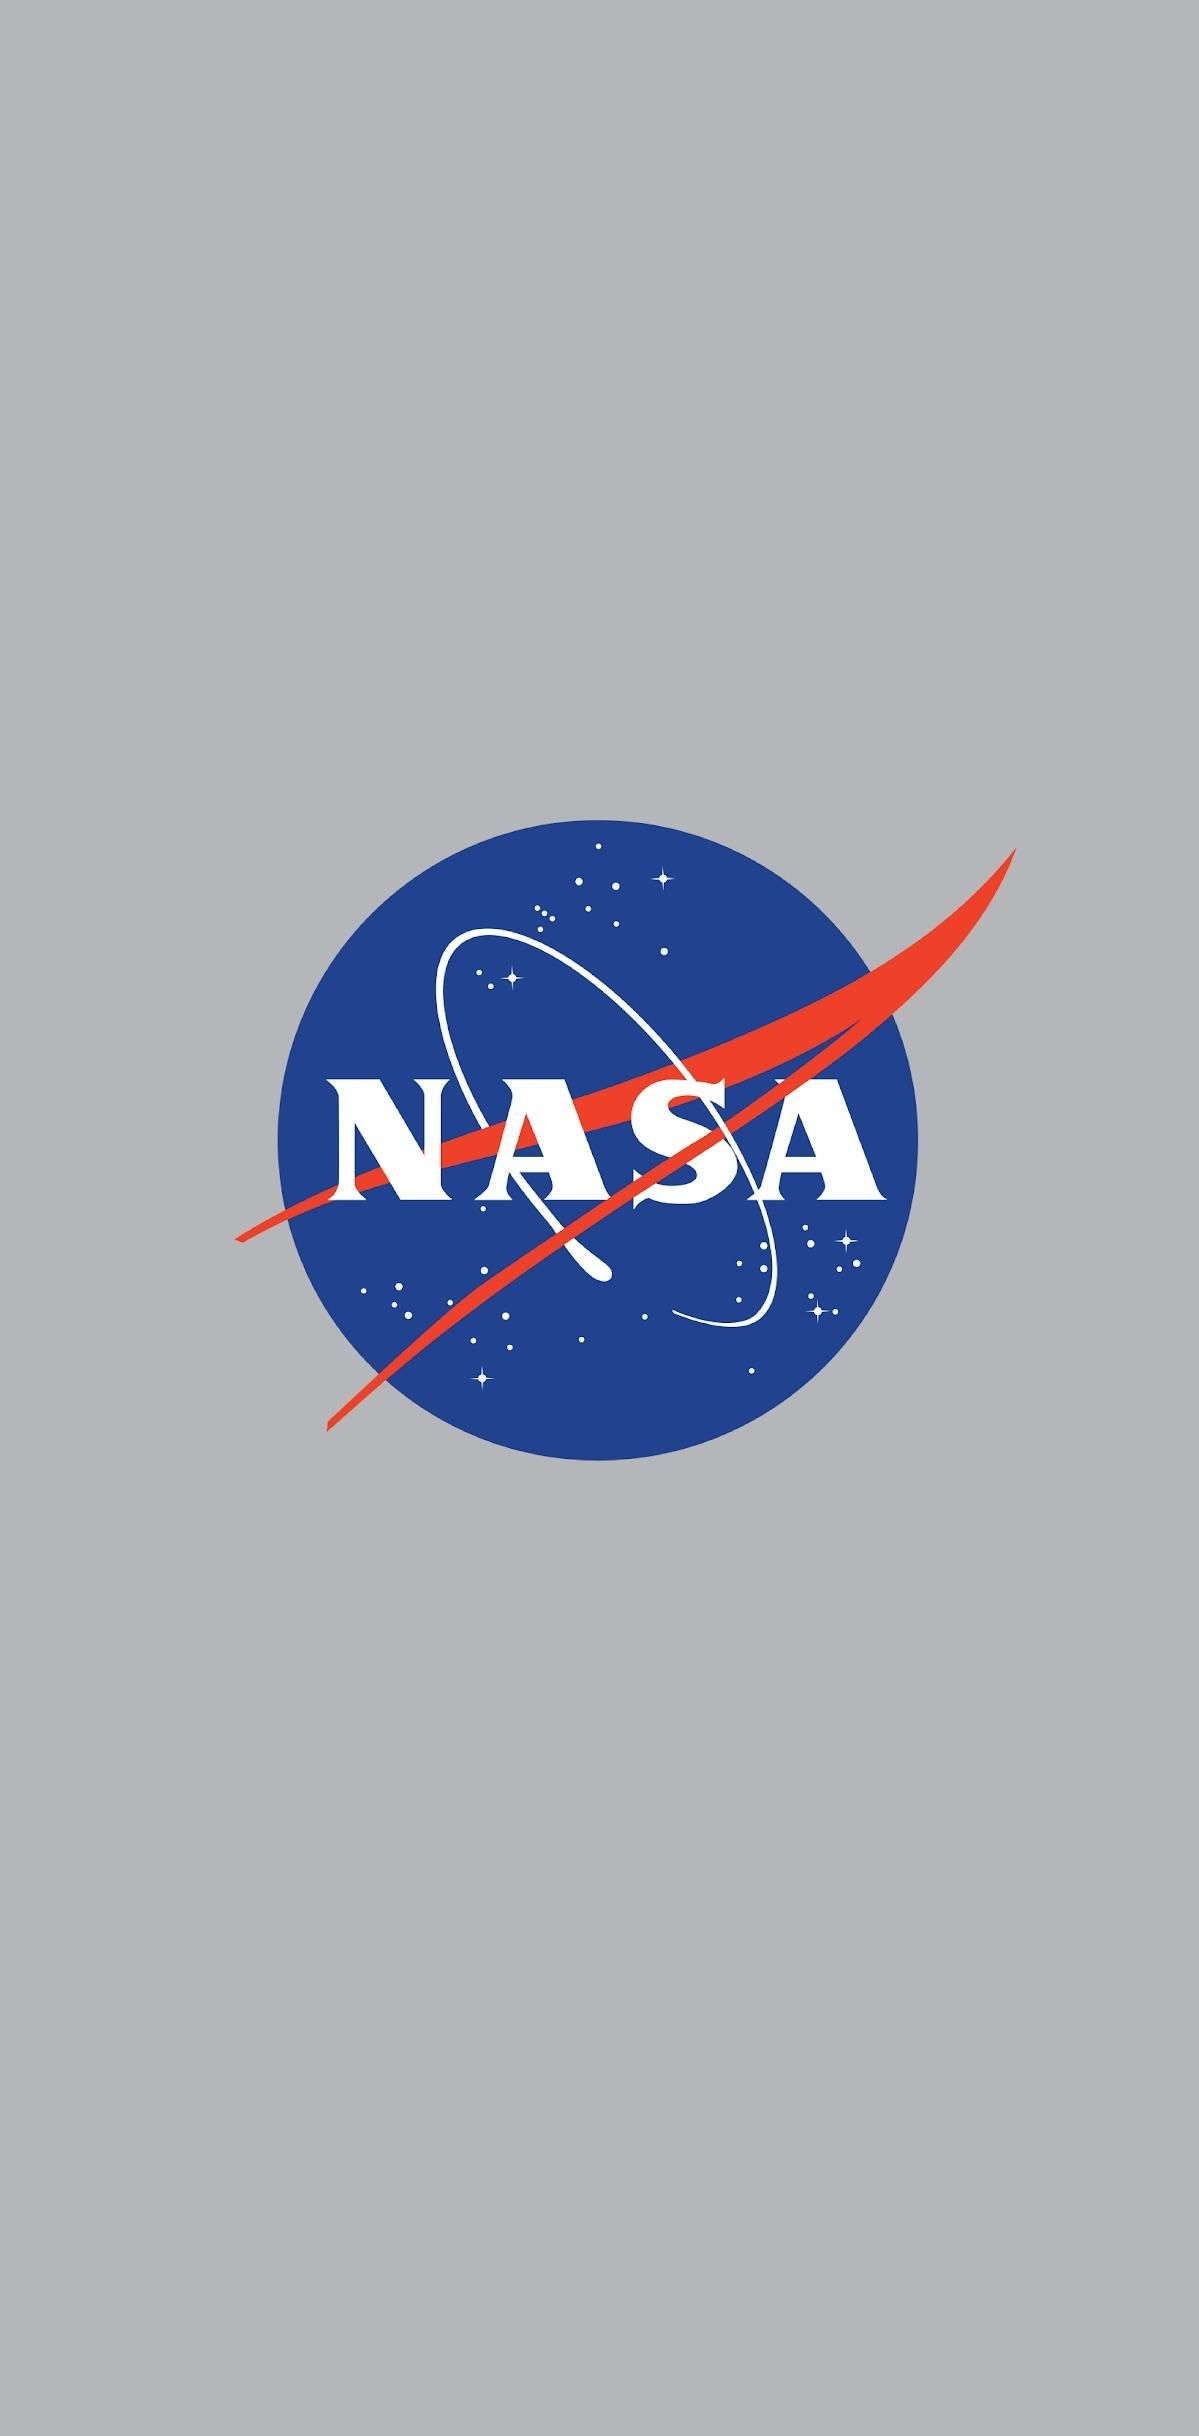 Nasa Phone Wallpapers On Wallpaperdog Here you can find the best nasa space wallpapers uploaded by our community. nasa phone wallpapers on wallpaperdog